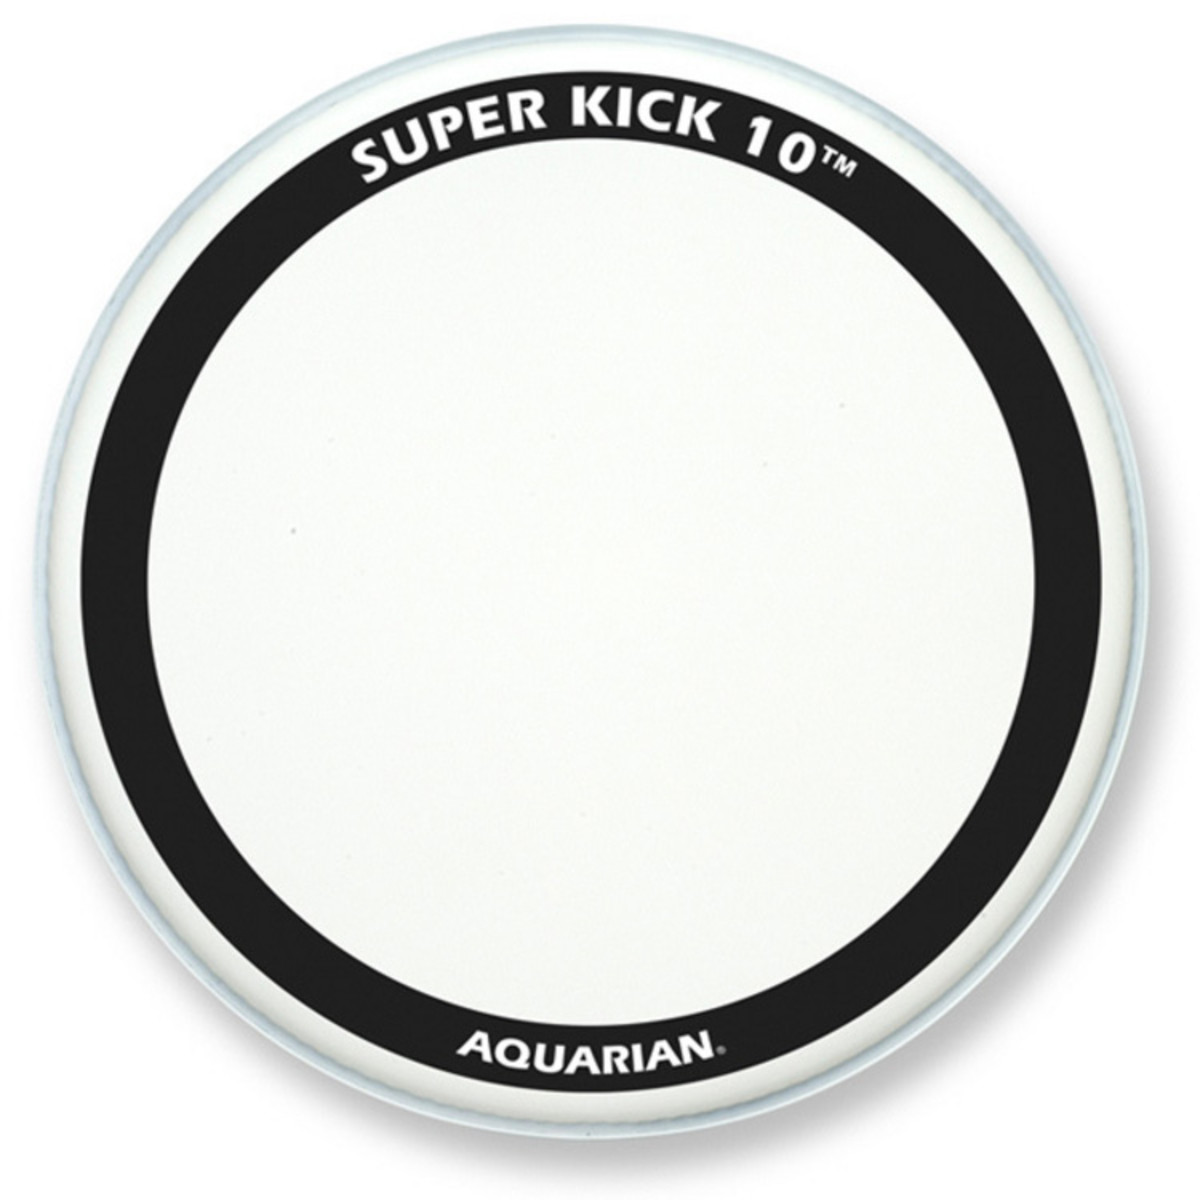 aquarian super kick 10 clear double ply 18 bass drum head at gear4music. Black Bedroom Furniture Sets. Home Design Ideas